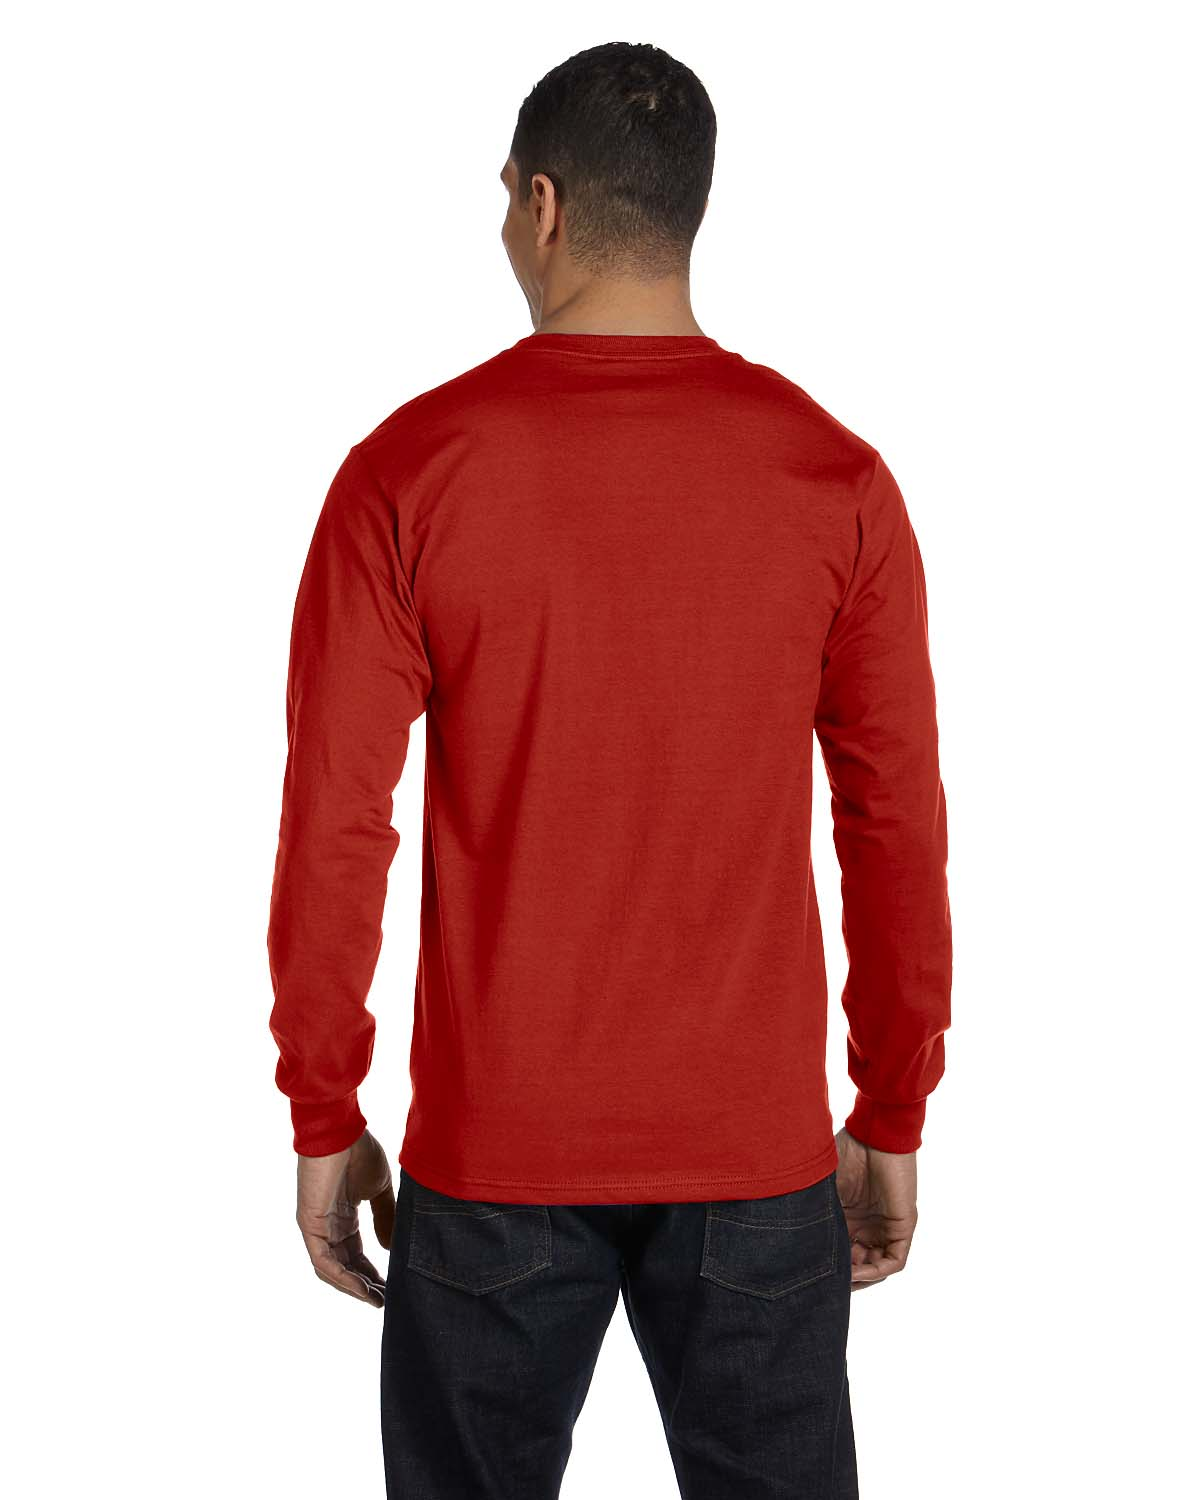 New hanes 6 1 oz 100 cotton long sleeve beefy t s xl t for Mens 100 cotton long sleeve t shirts